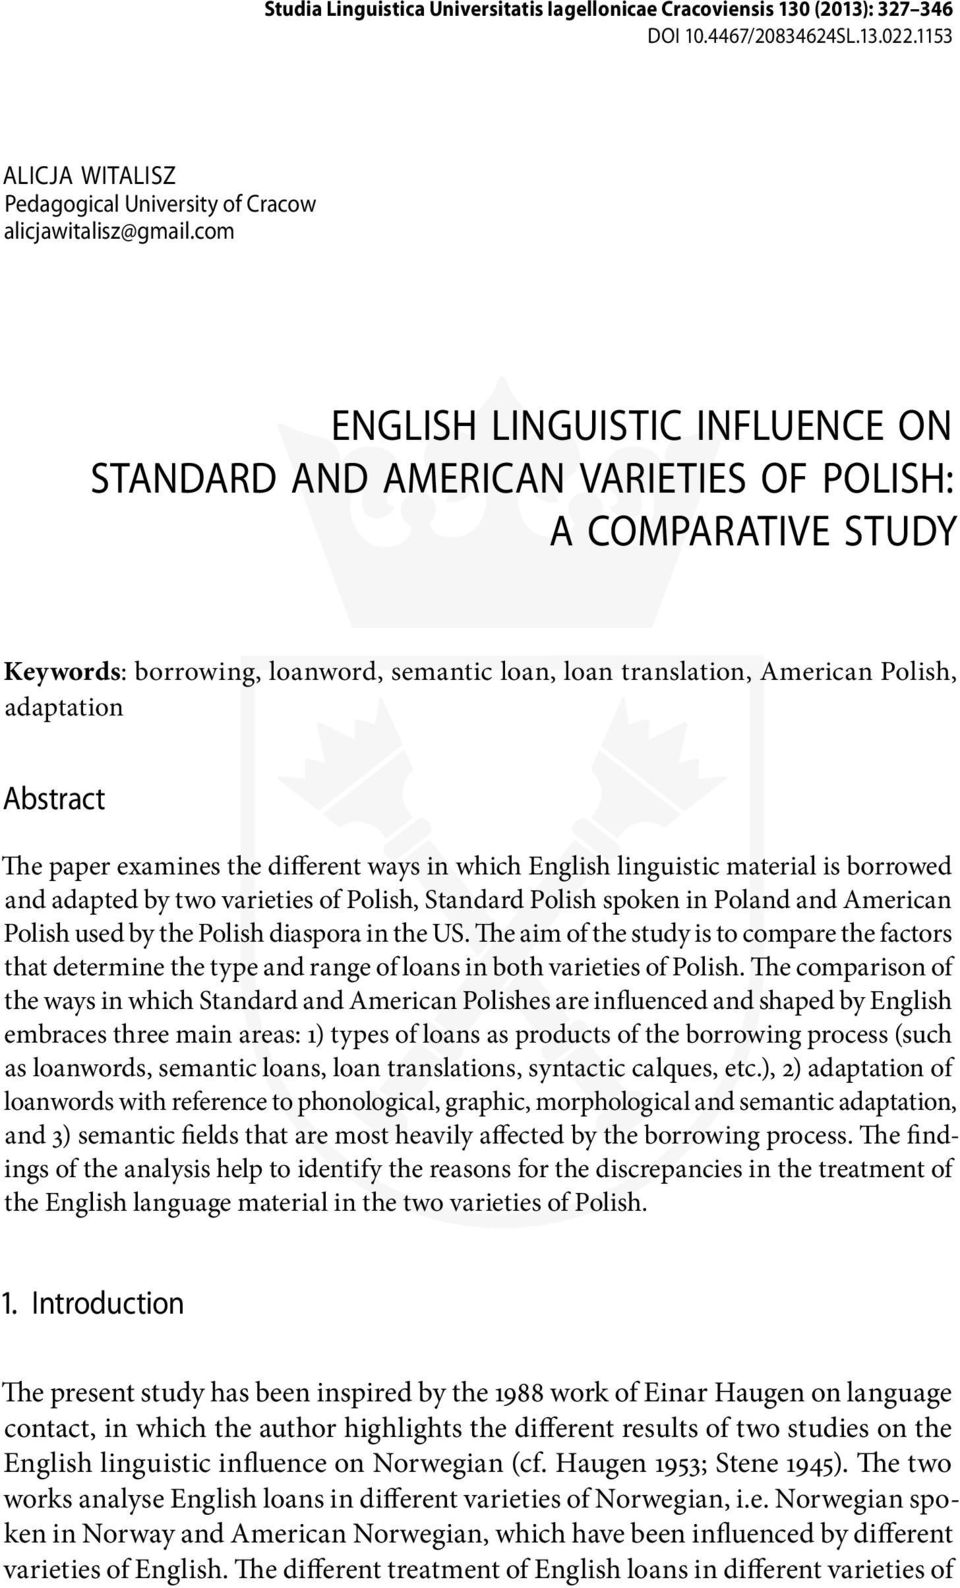 The paper examines the different ways in which English linguistic material is borrowed and adapted by two varieties of Polish, Standard Polish spoken in Poland and American Polish used by the Polish